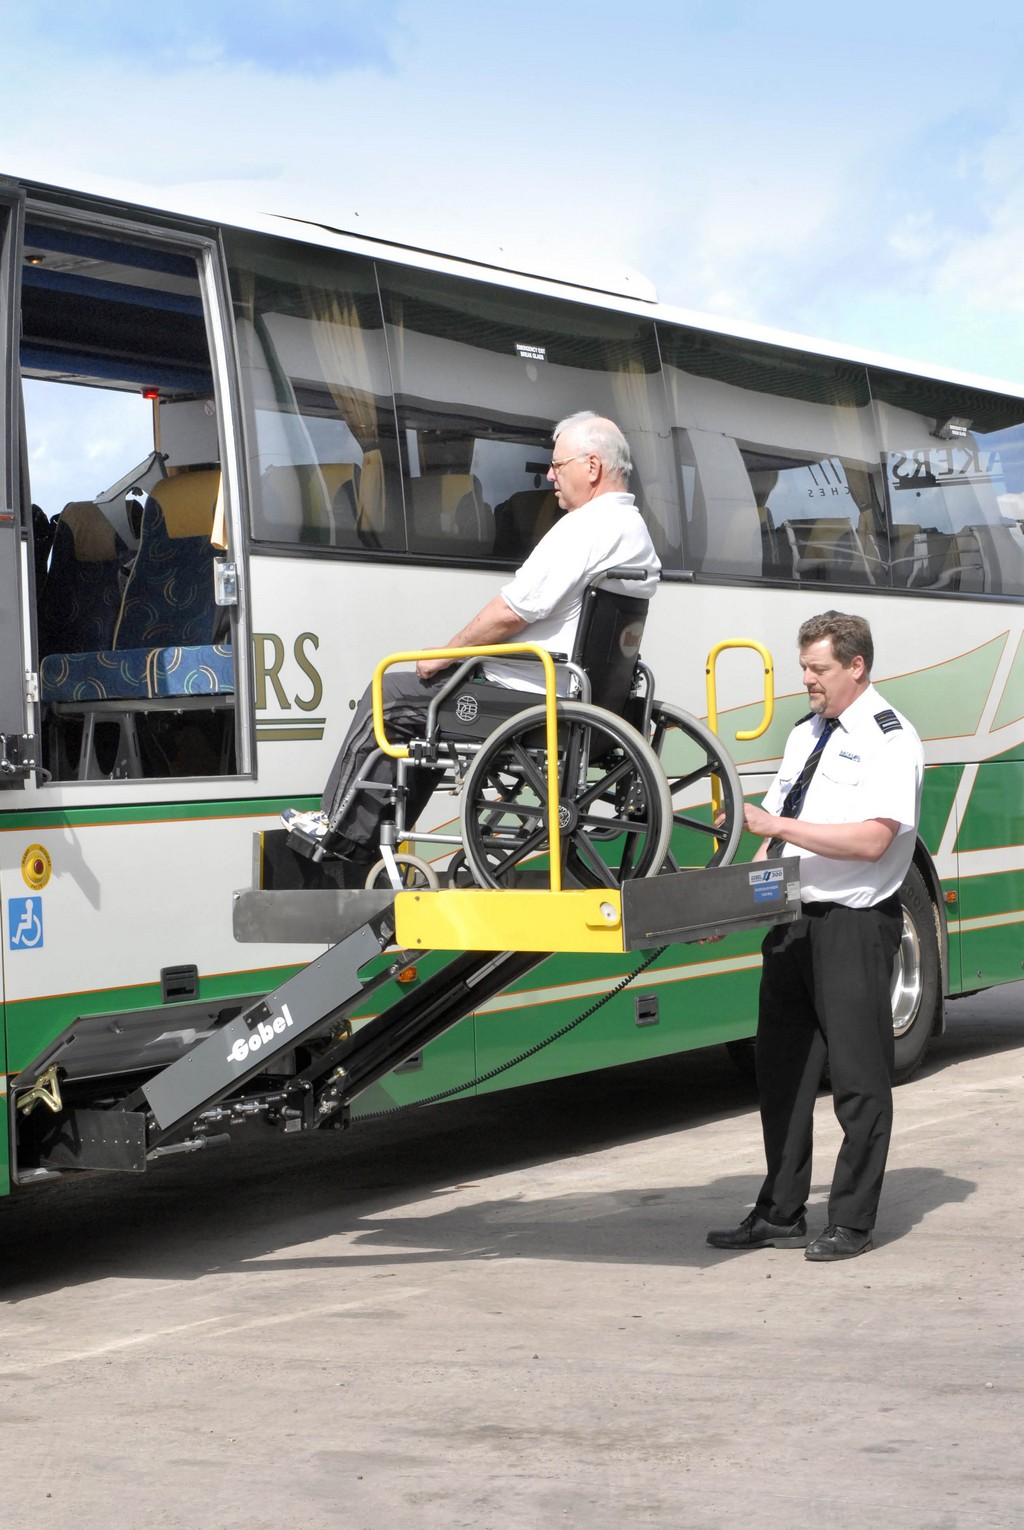 homemade motorhome wheelchair lift, electric wheel chair lifts, truck with wheel chair lifts for sale, adaptive equipment company wheelchair lift